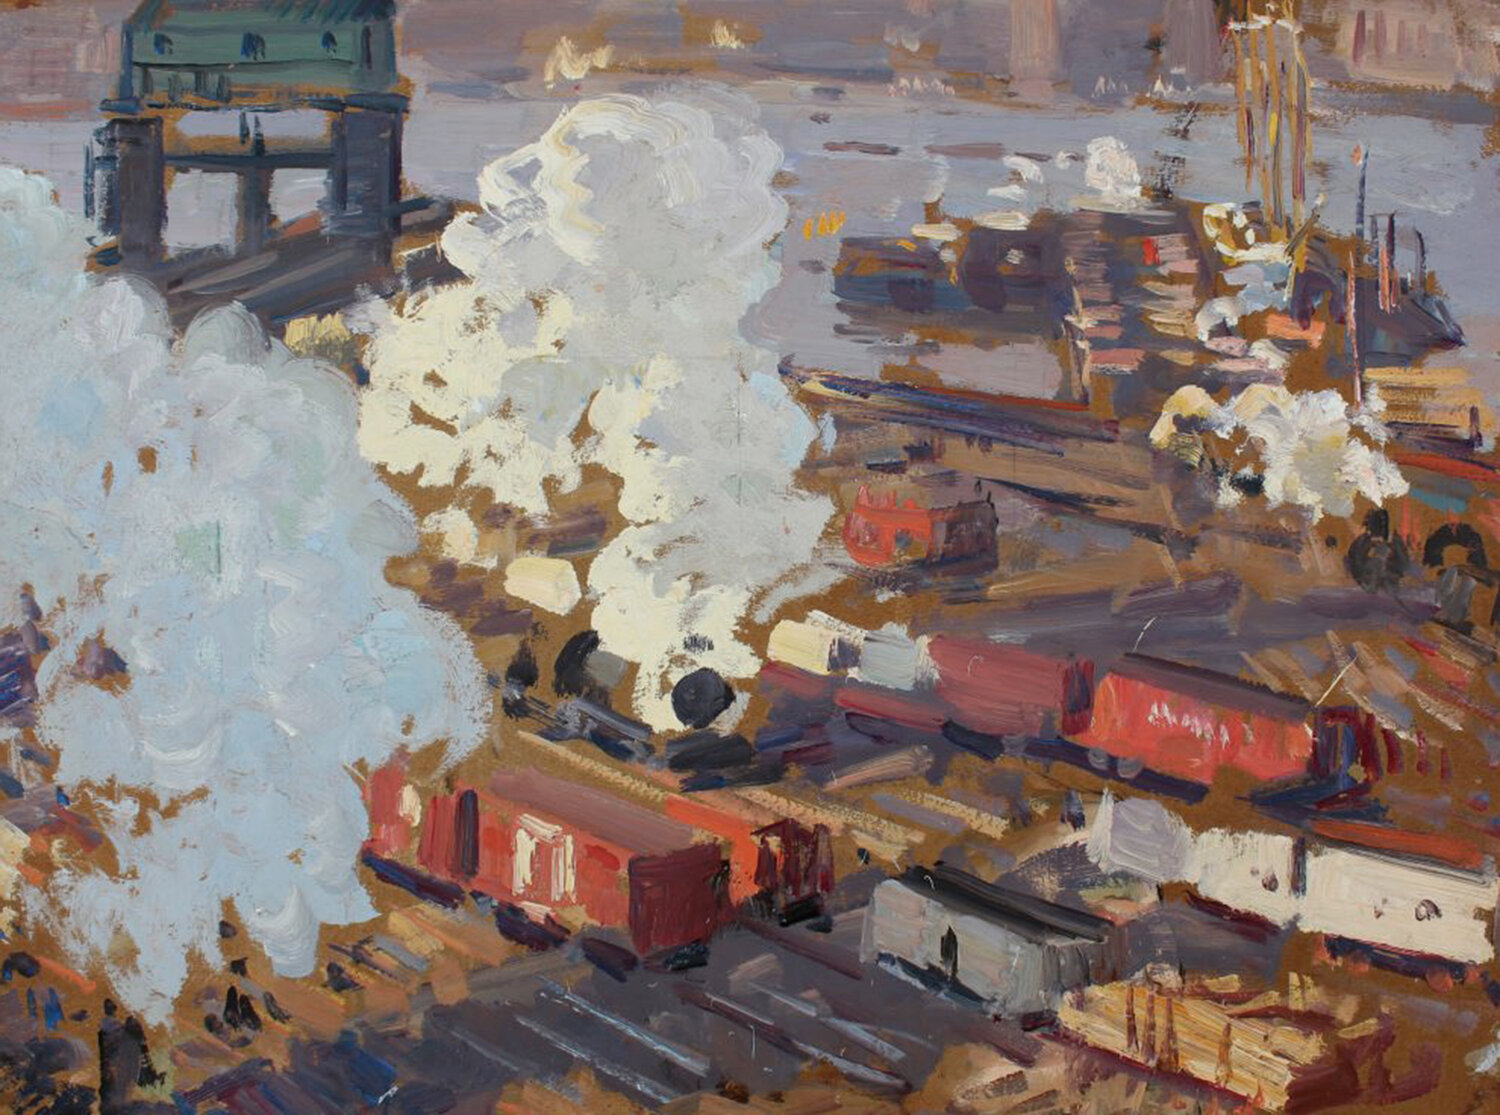 Image of railway yard with steam in blue, red, browns, and grays by Gifford Beal